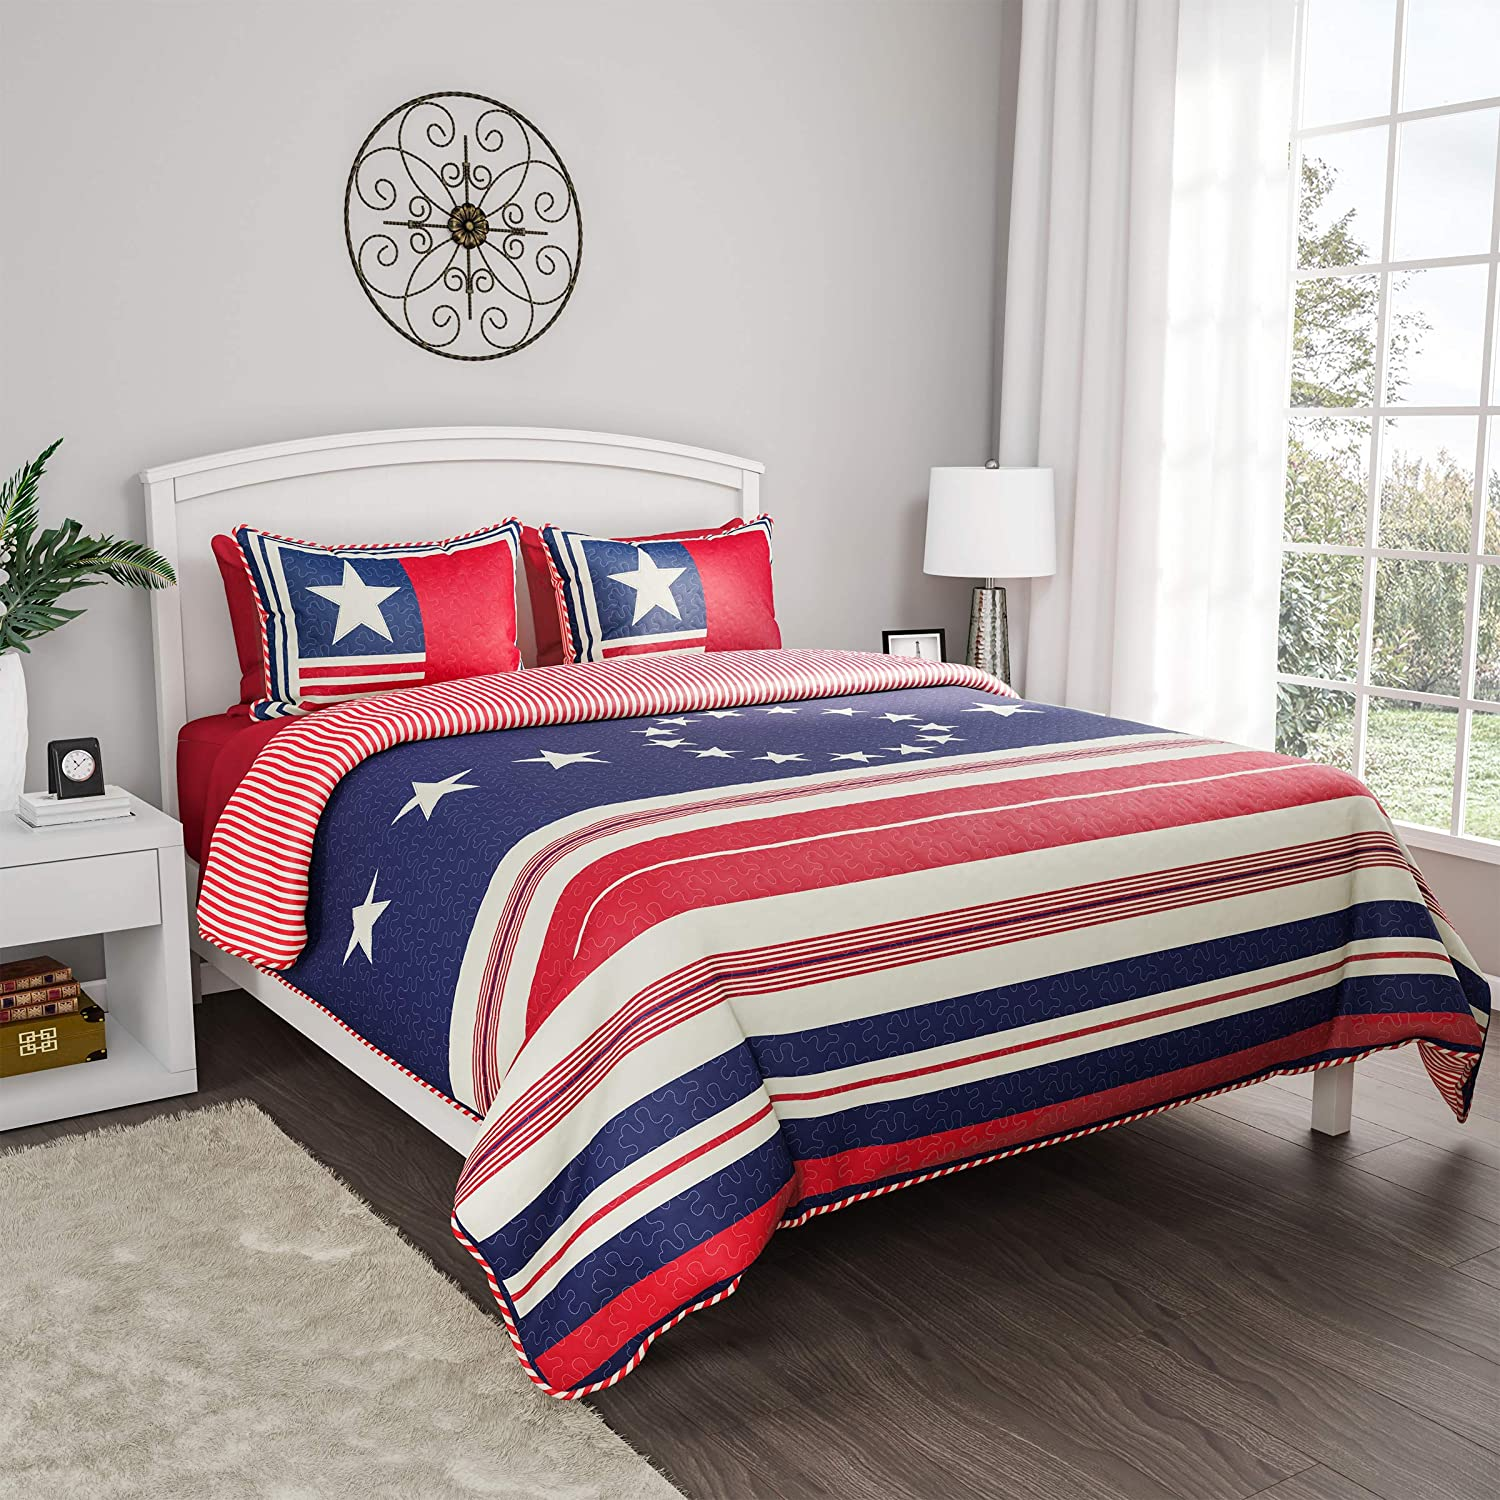 Lavish Home Collection 3-Piece Quilt Set – Hypoallergenic Glory Bound Microfiber Patriotic Americana Flag Print All-Season Blanket with Shams (Full/Queen)